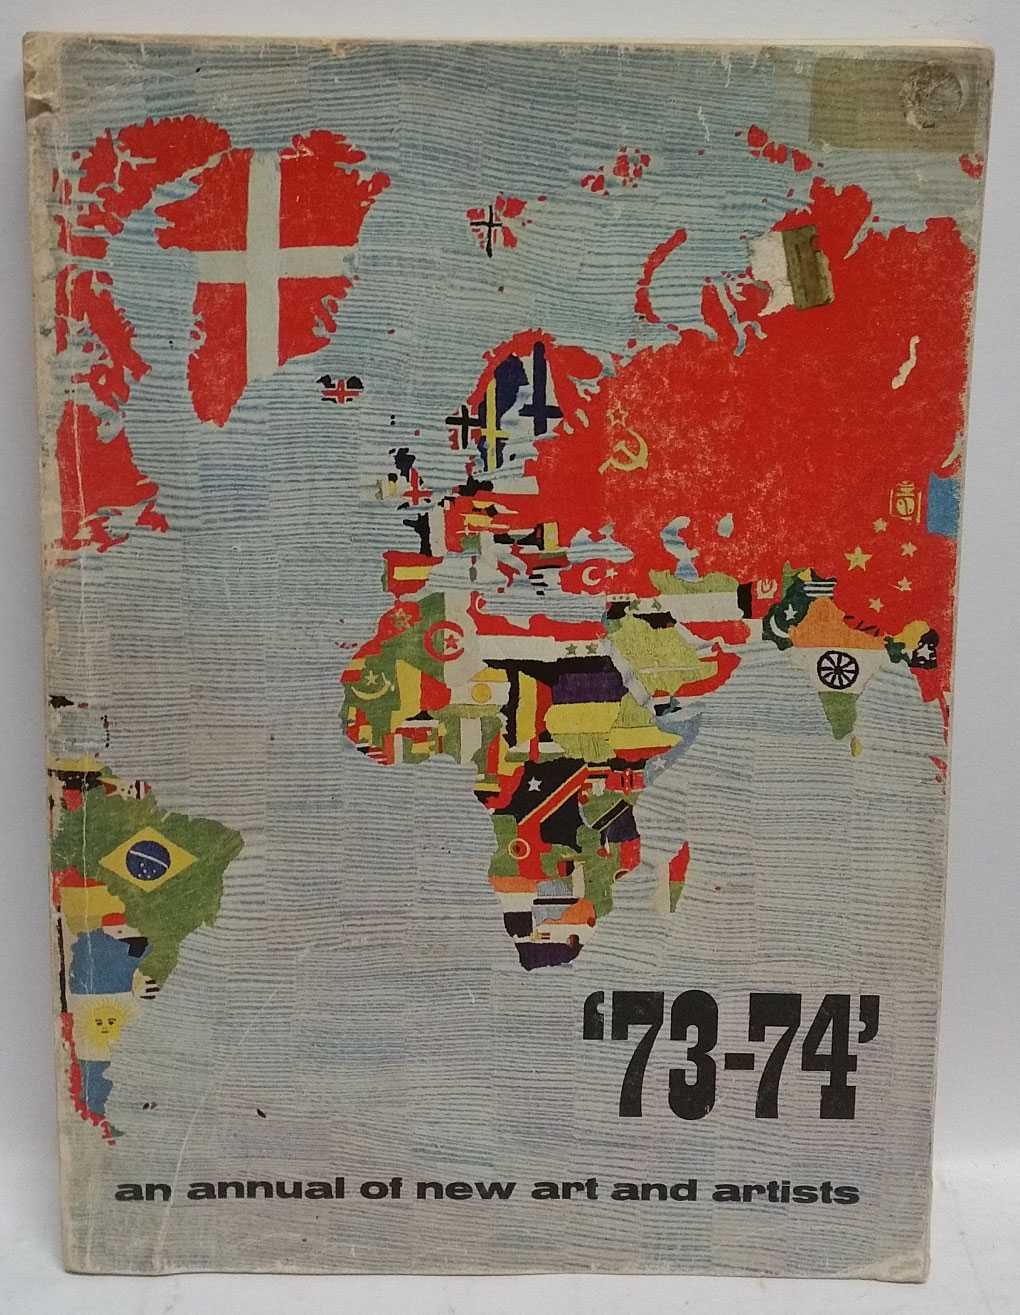 '73-74' An Annual of New Art and Artists, Willem Sandberg